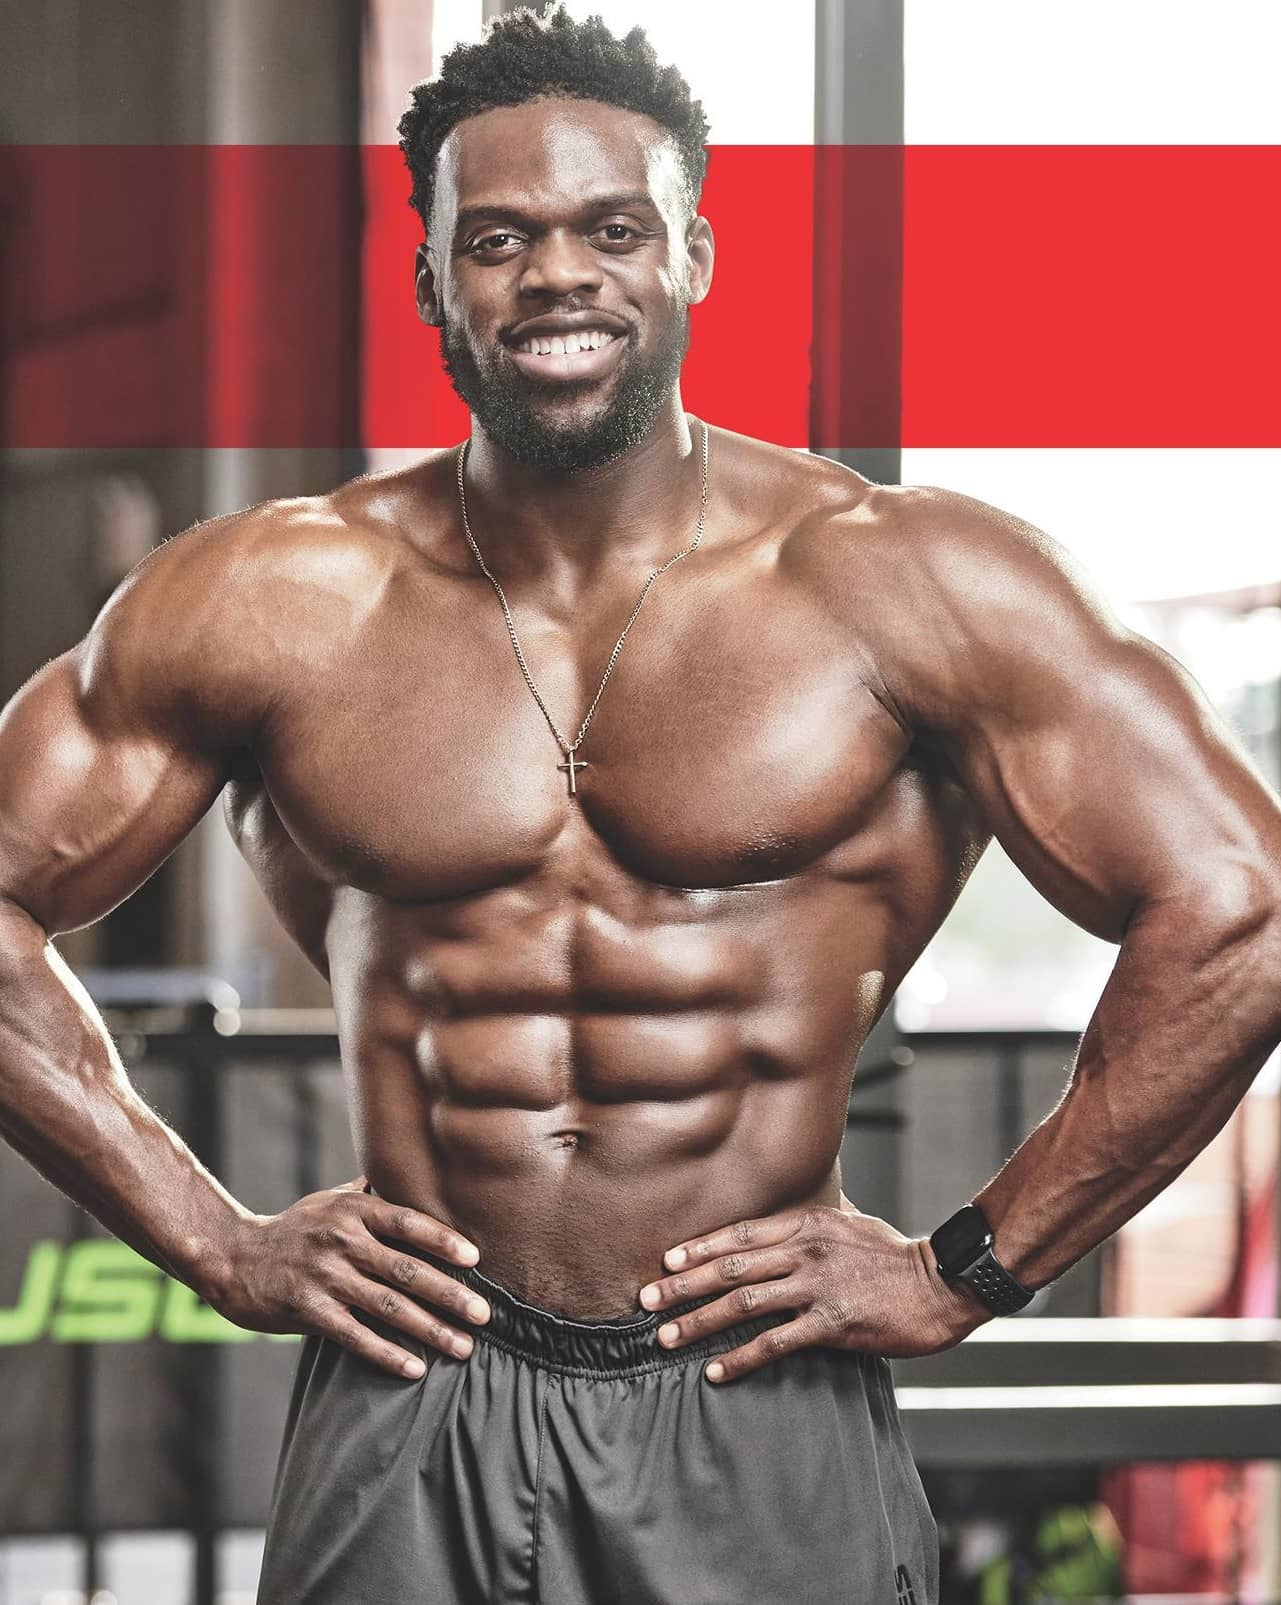 FINE ART: CHISELING A COMPETITION-QUALITY UPPER BODY